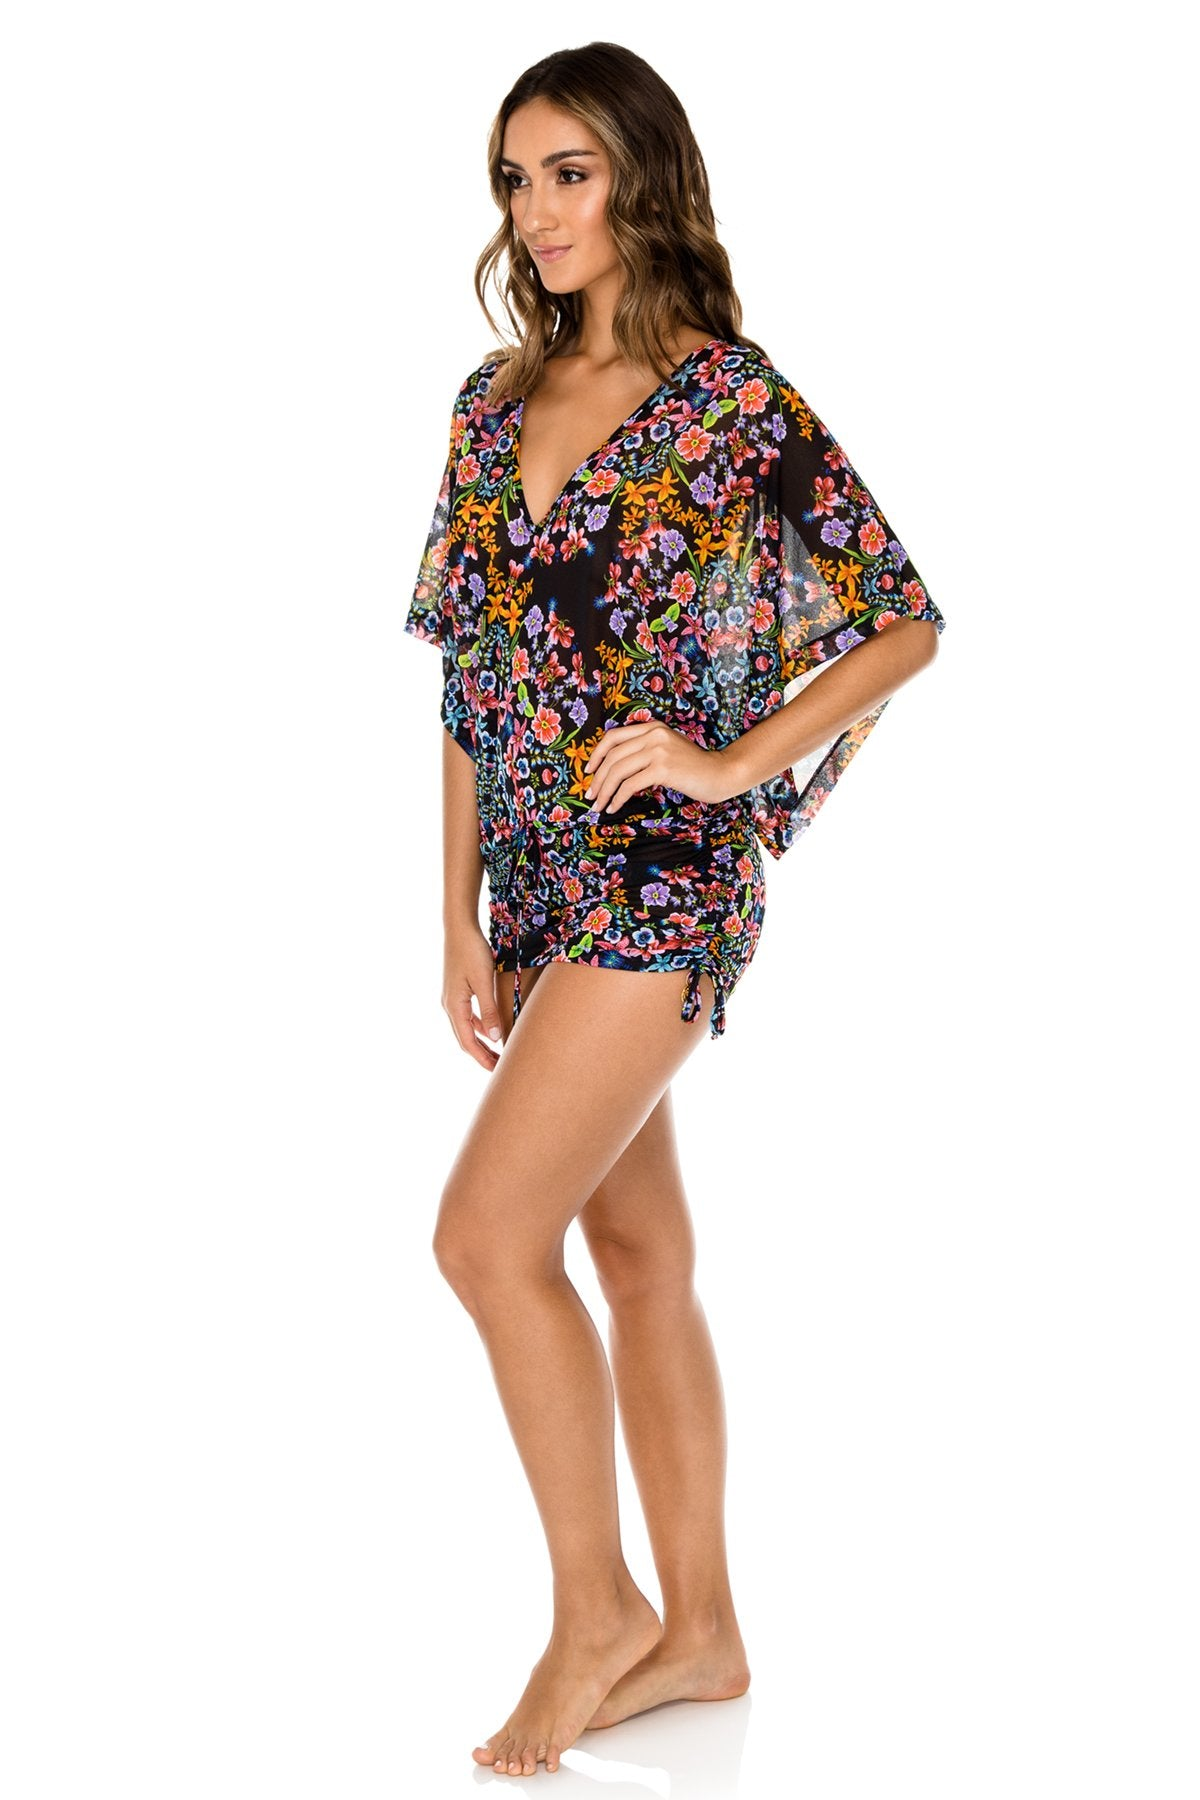 NOCHES DE SEVILLA - Cabana V Neck Dress • Multicolor